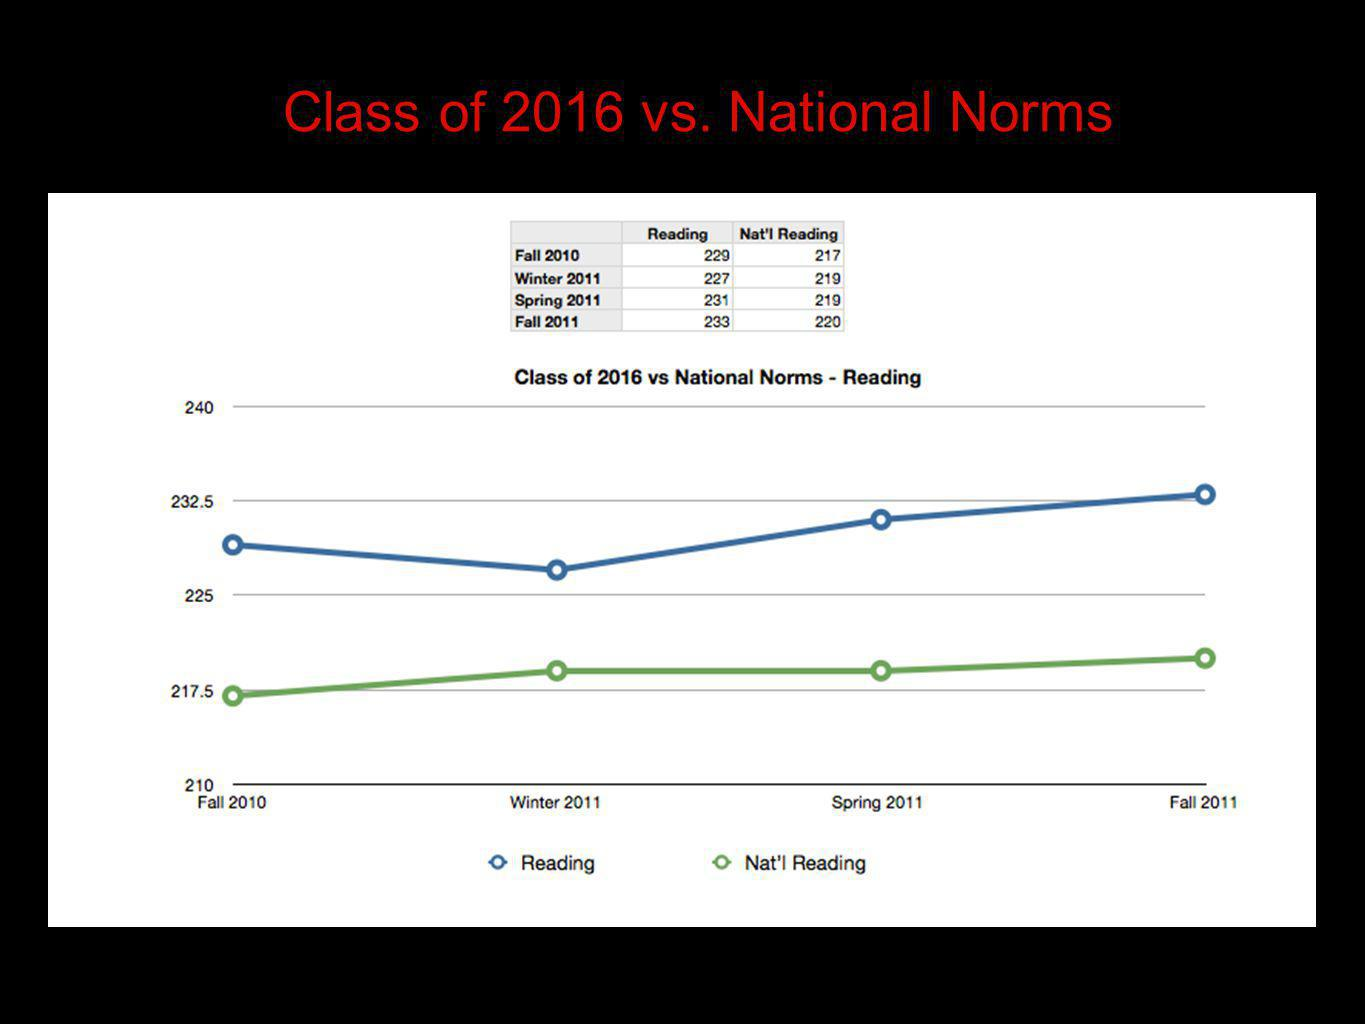 Class of 2016 vs. National Norms